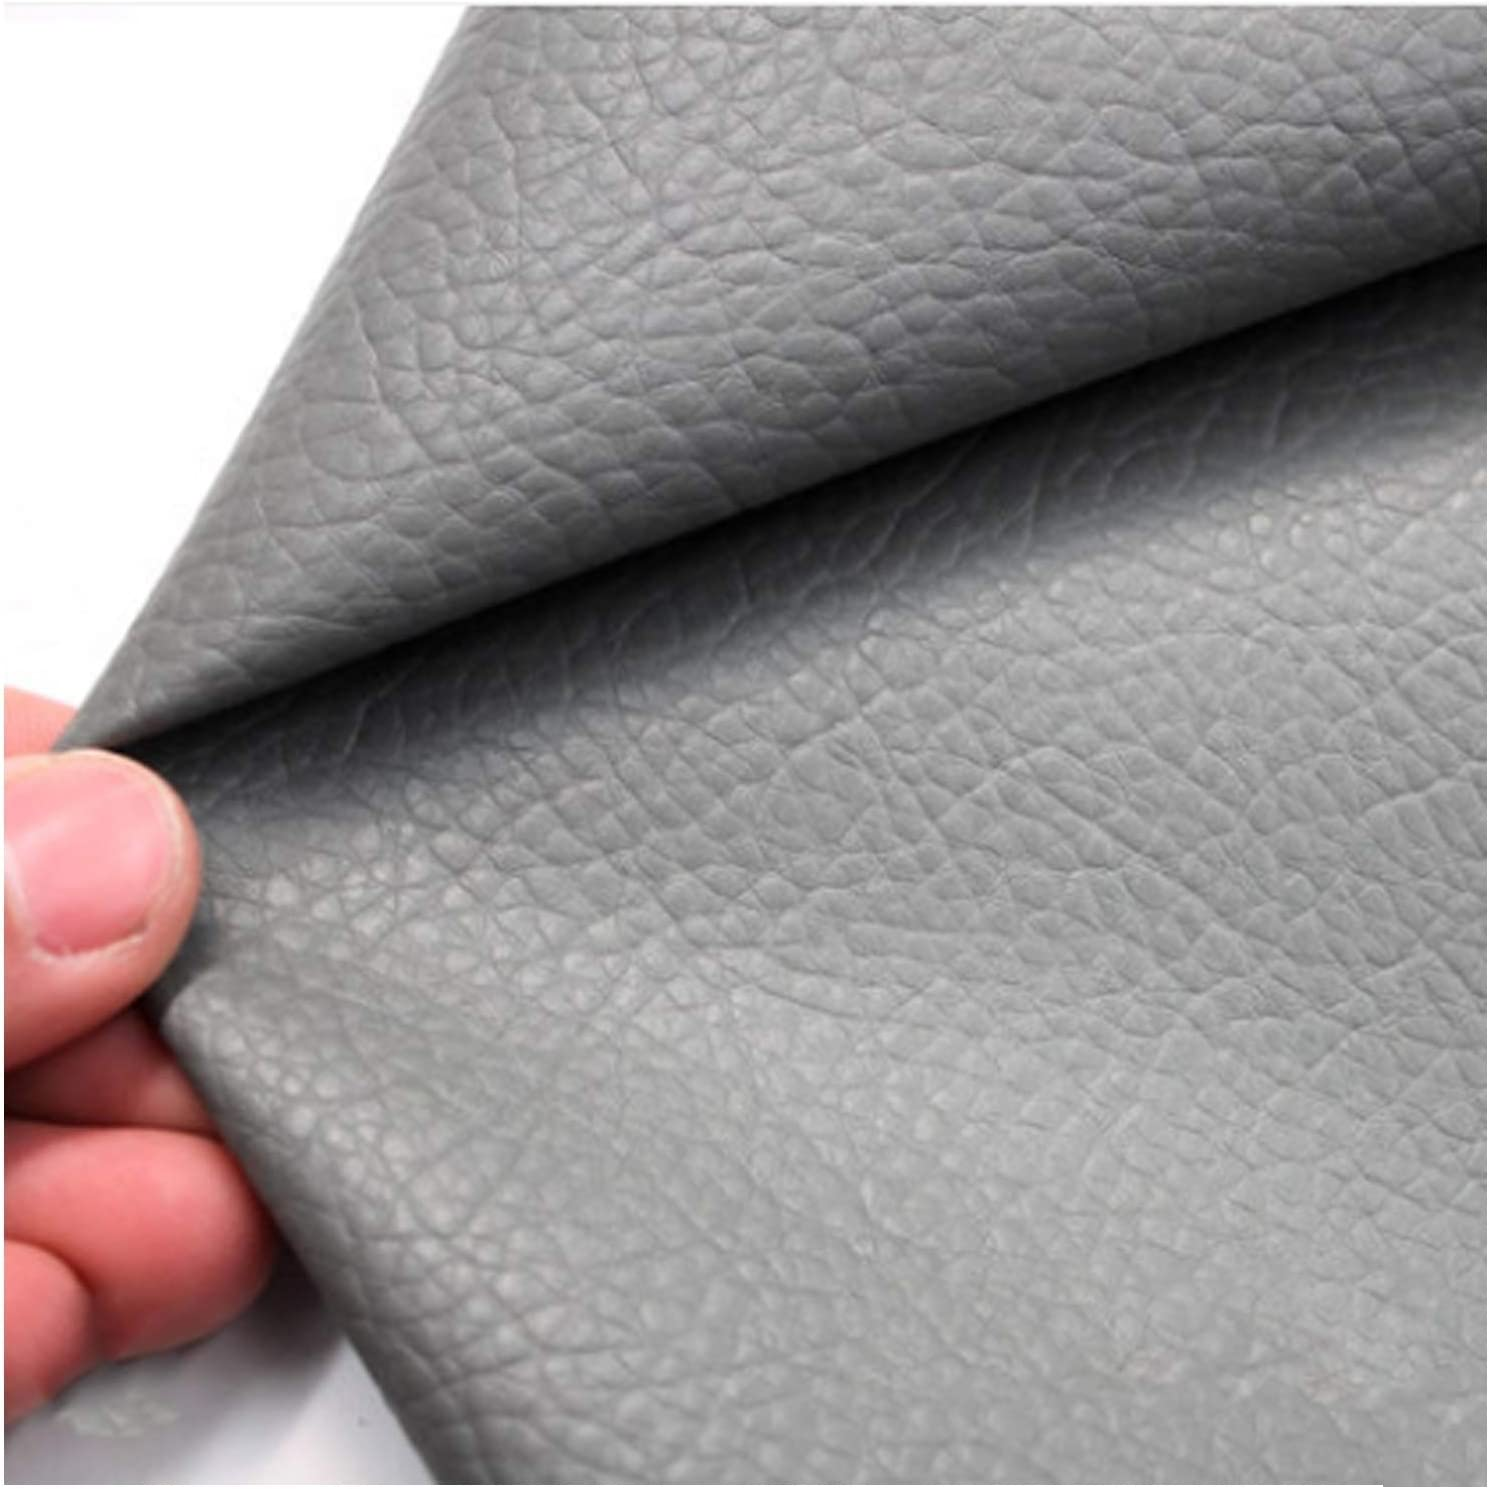 YANGUANG Leatherette Max 85% OFF Faux Outstanding Leather Fabric Texture Litchi Grain Le